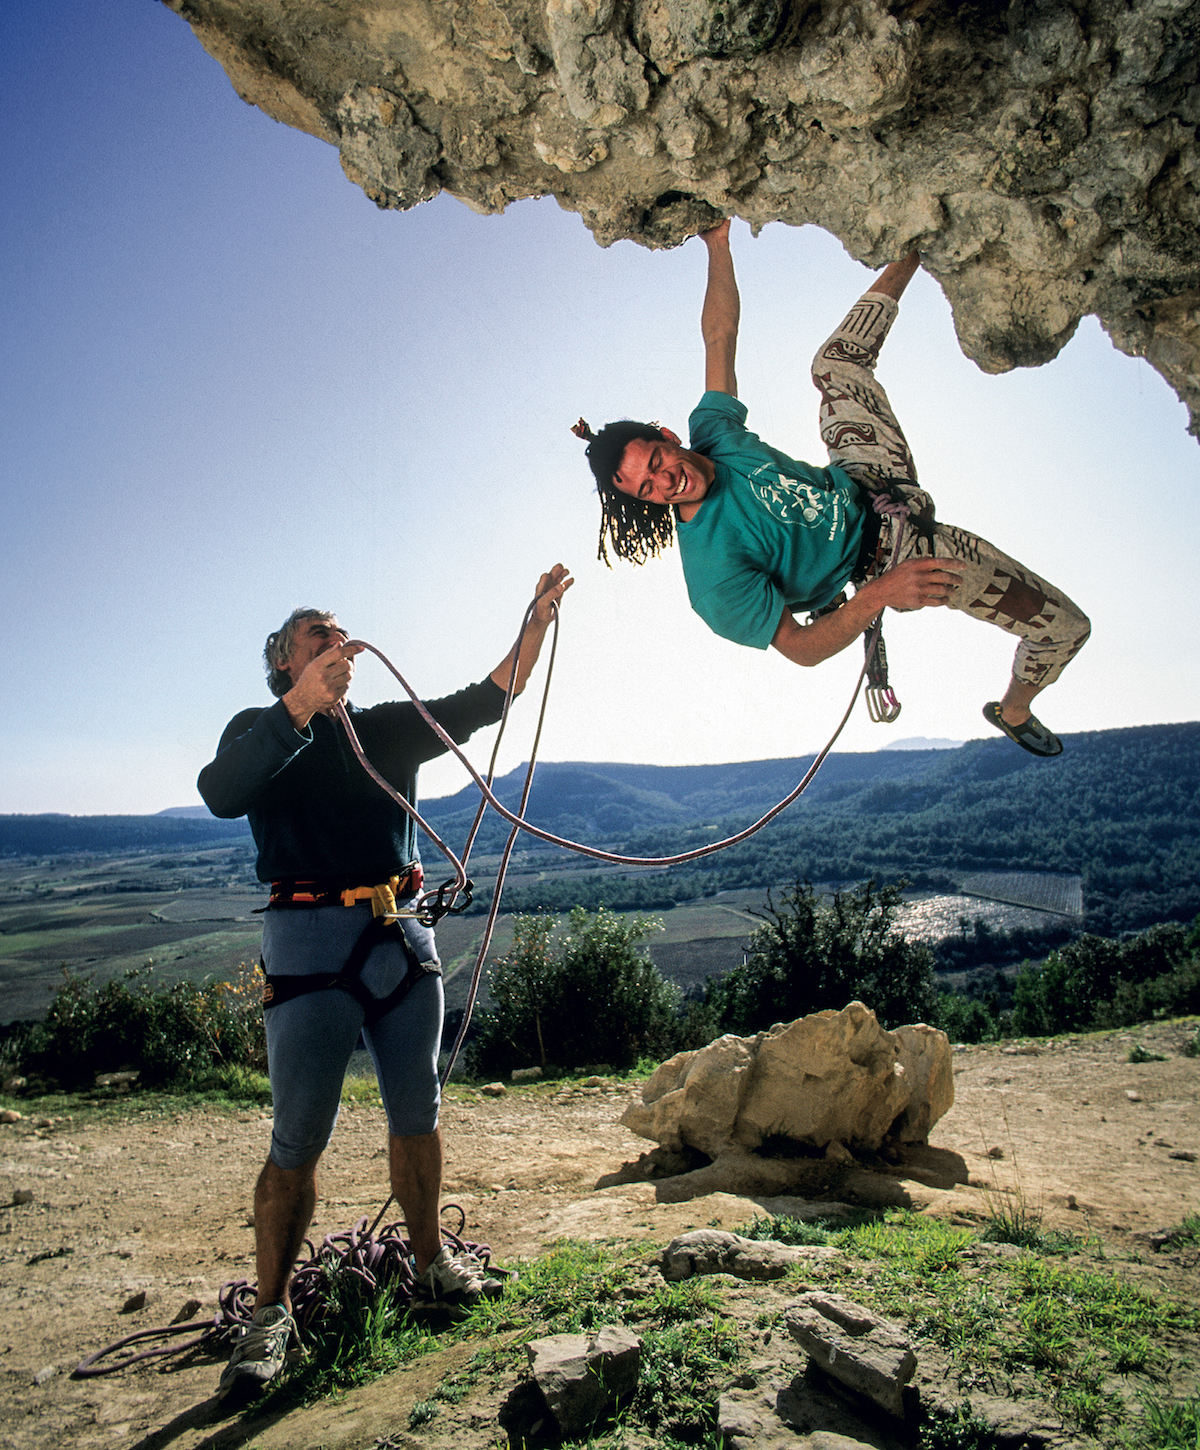 Hugues Beauzile and Lucien Lulu Berardini climbing at the crag they helped develop in Claret, France. [Photo] Pascal Tournaire